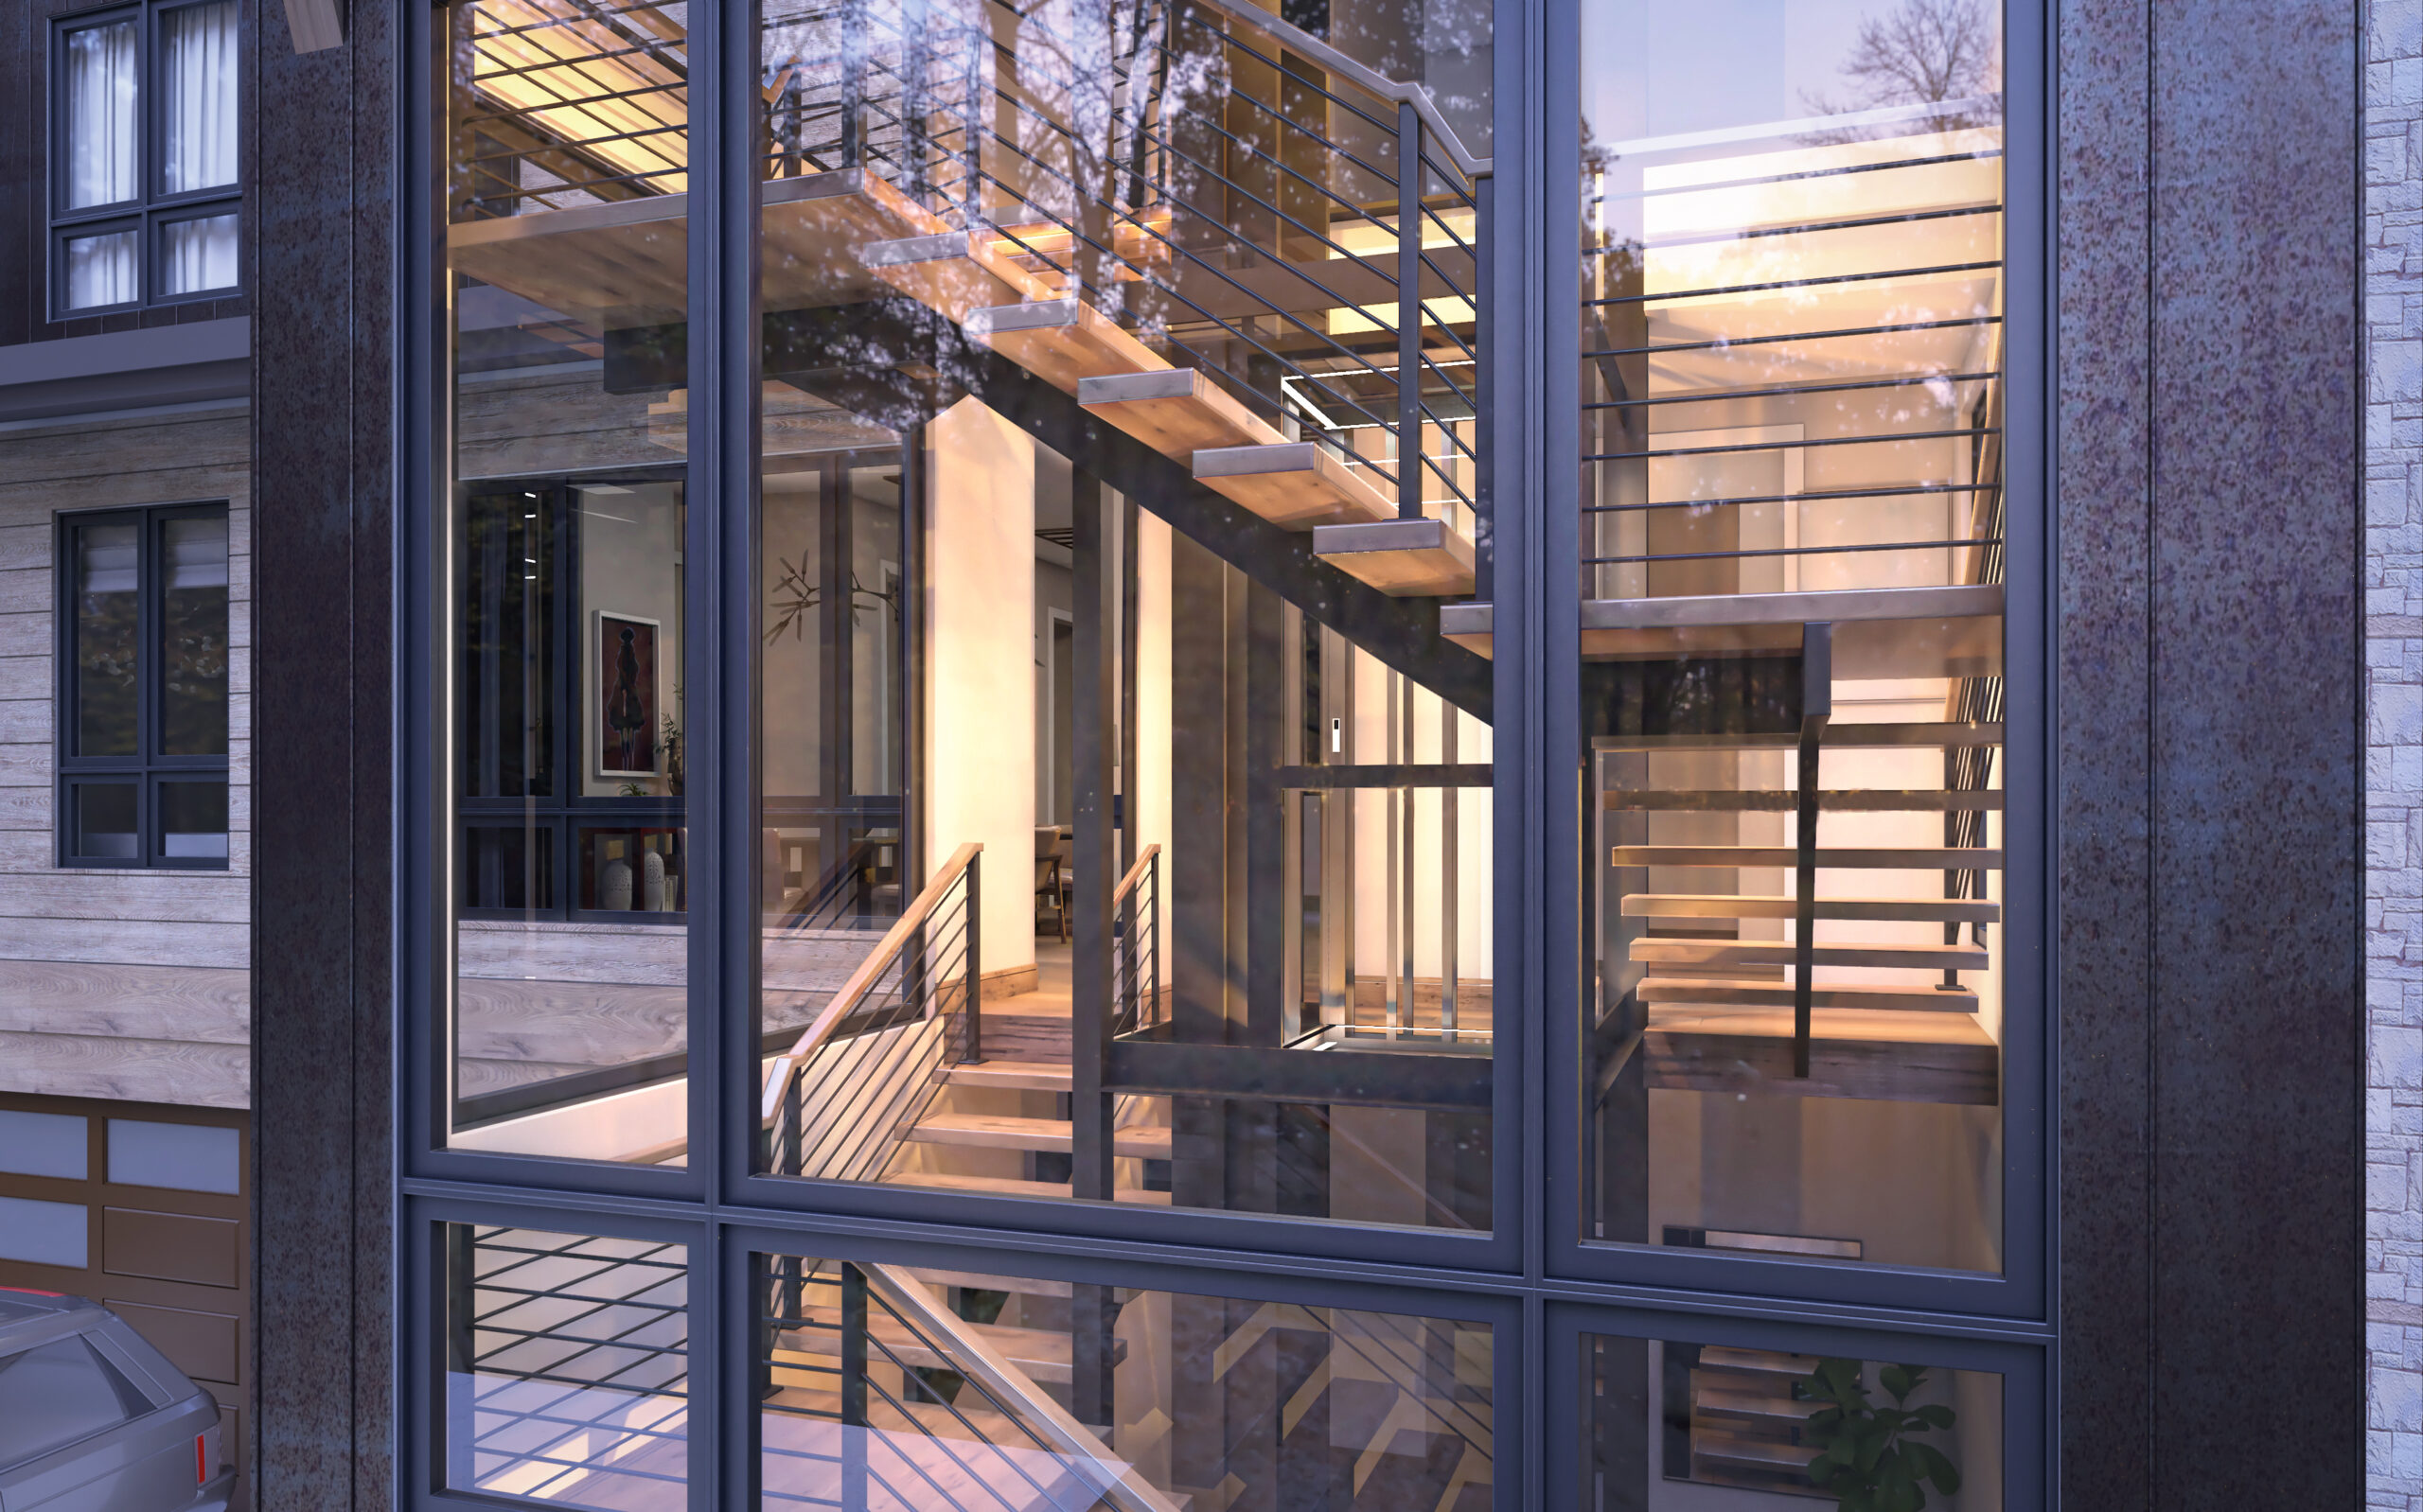 Exterior rendering of windows showing spiral staircase inside home